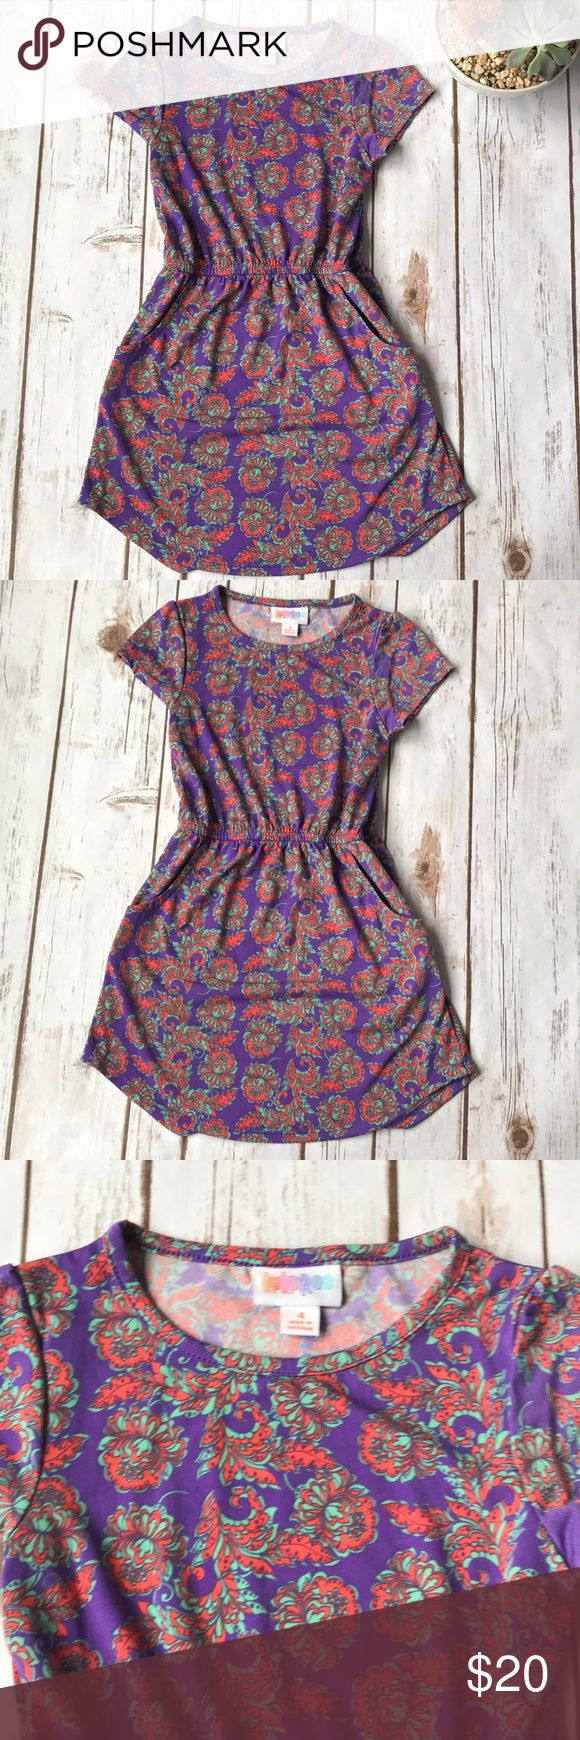 Toddler Girl LuLaRoe Mae Dress in Paisley Pattern EUC! Worn only once. This is a LuLaRoe Mae dress size 4 which fits size 3-4 per LuLaRoe size chart in the last pic. This costs $32 New and this is basically brand new. Super cute dress has pockets on both sides. Light and adorable for summer or spring. Smoke free home. LuLaRoe Dresses